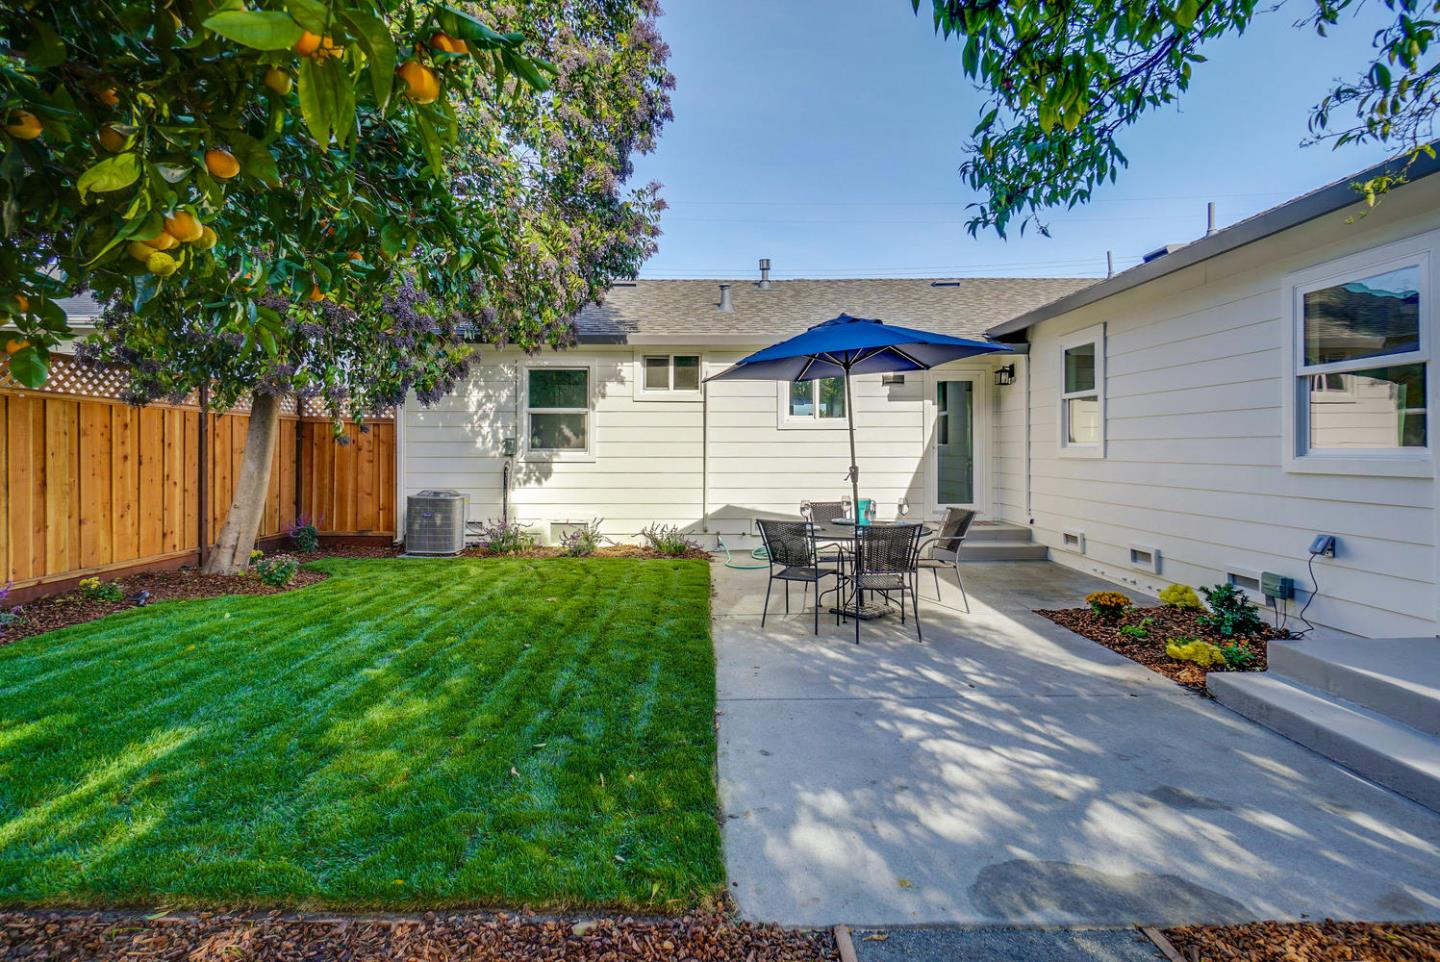 836 Cedar Avenue Sunnyvale, CA 94086 - MLS #: ML81732141